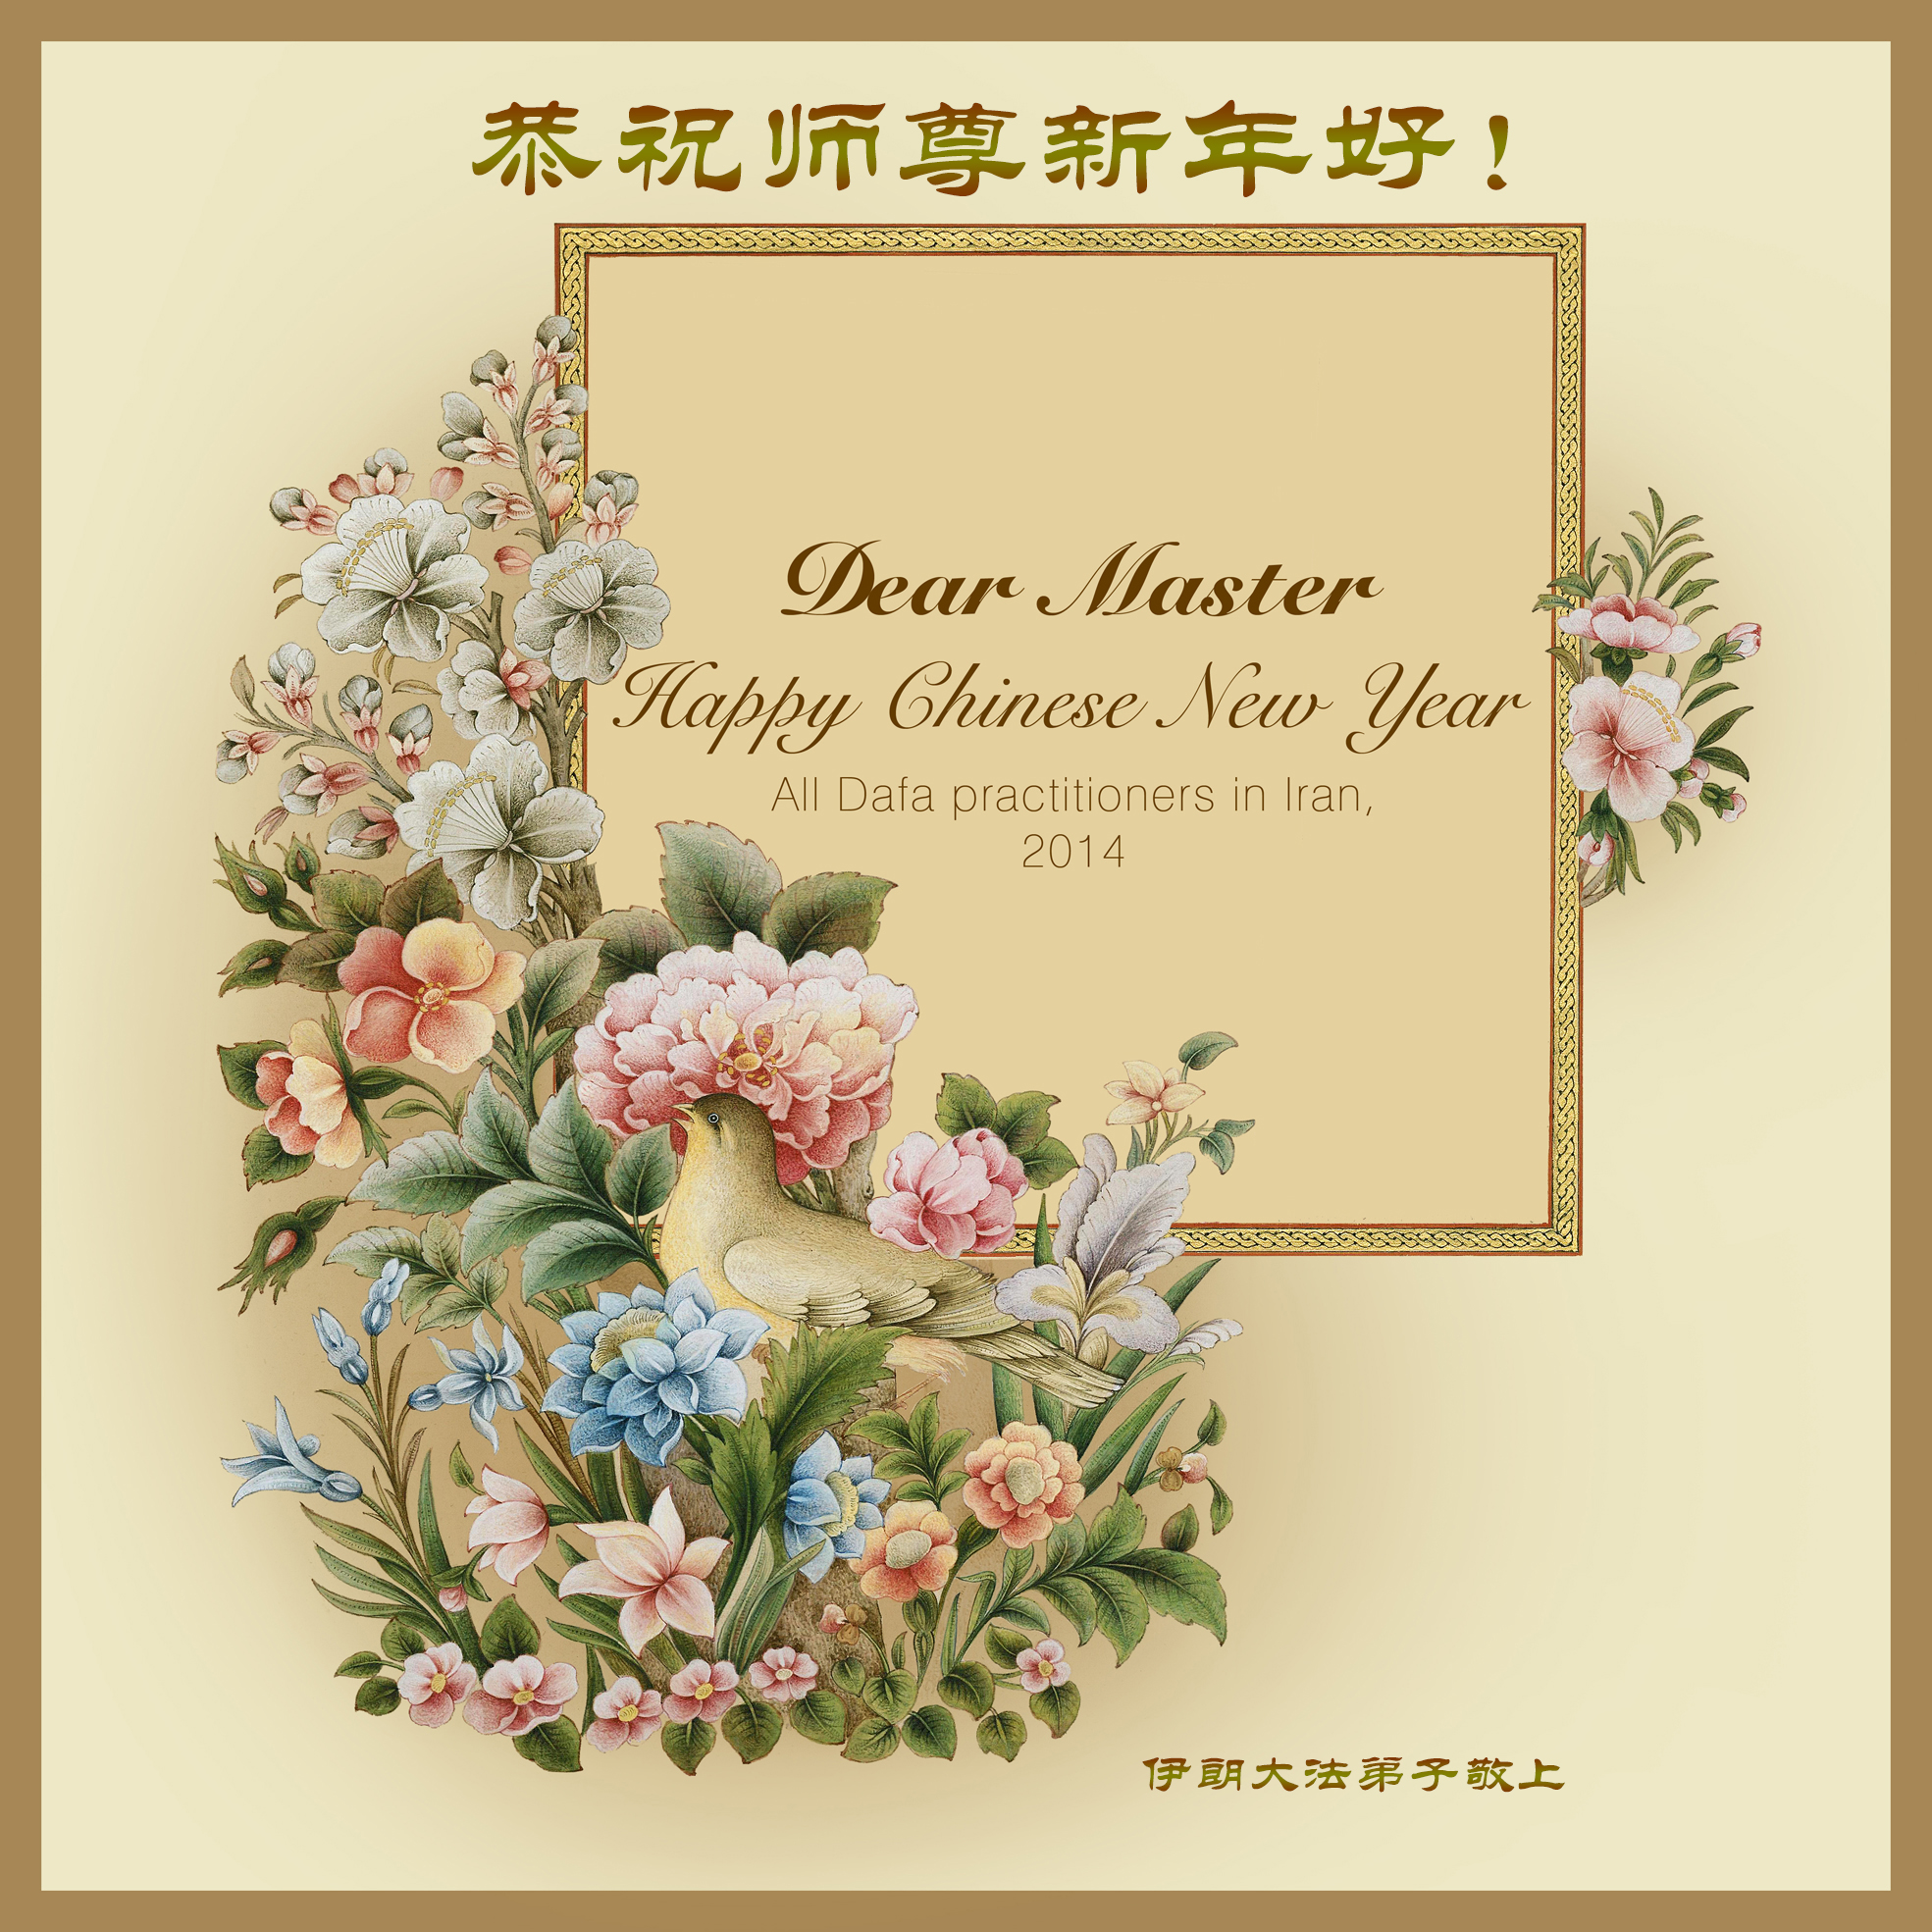 Falun dafa practitioners from iran arabia croatia serbia minghui falun dafa practitioners from iran the arabic world croatia serbia slovenia bosnia and herzegovina wish revered master a happy chinese kristyandbryce Images